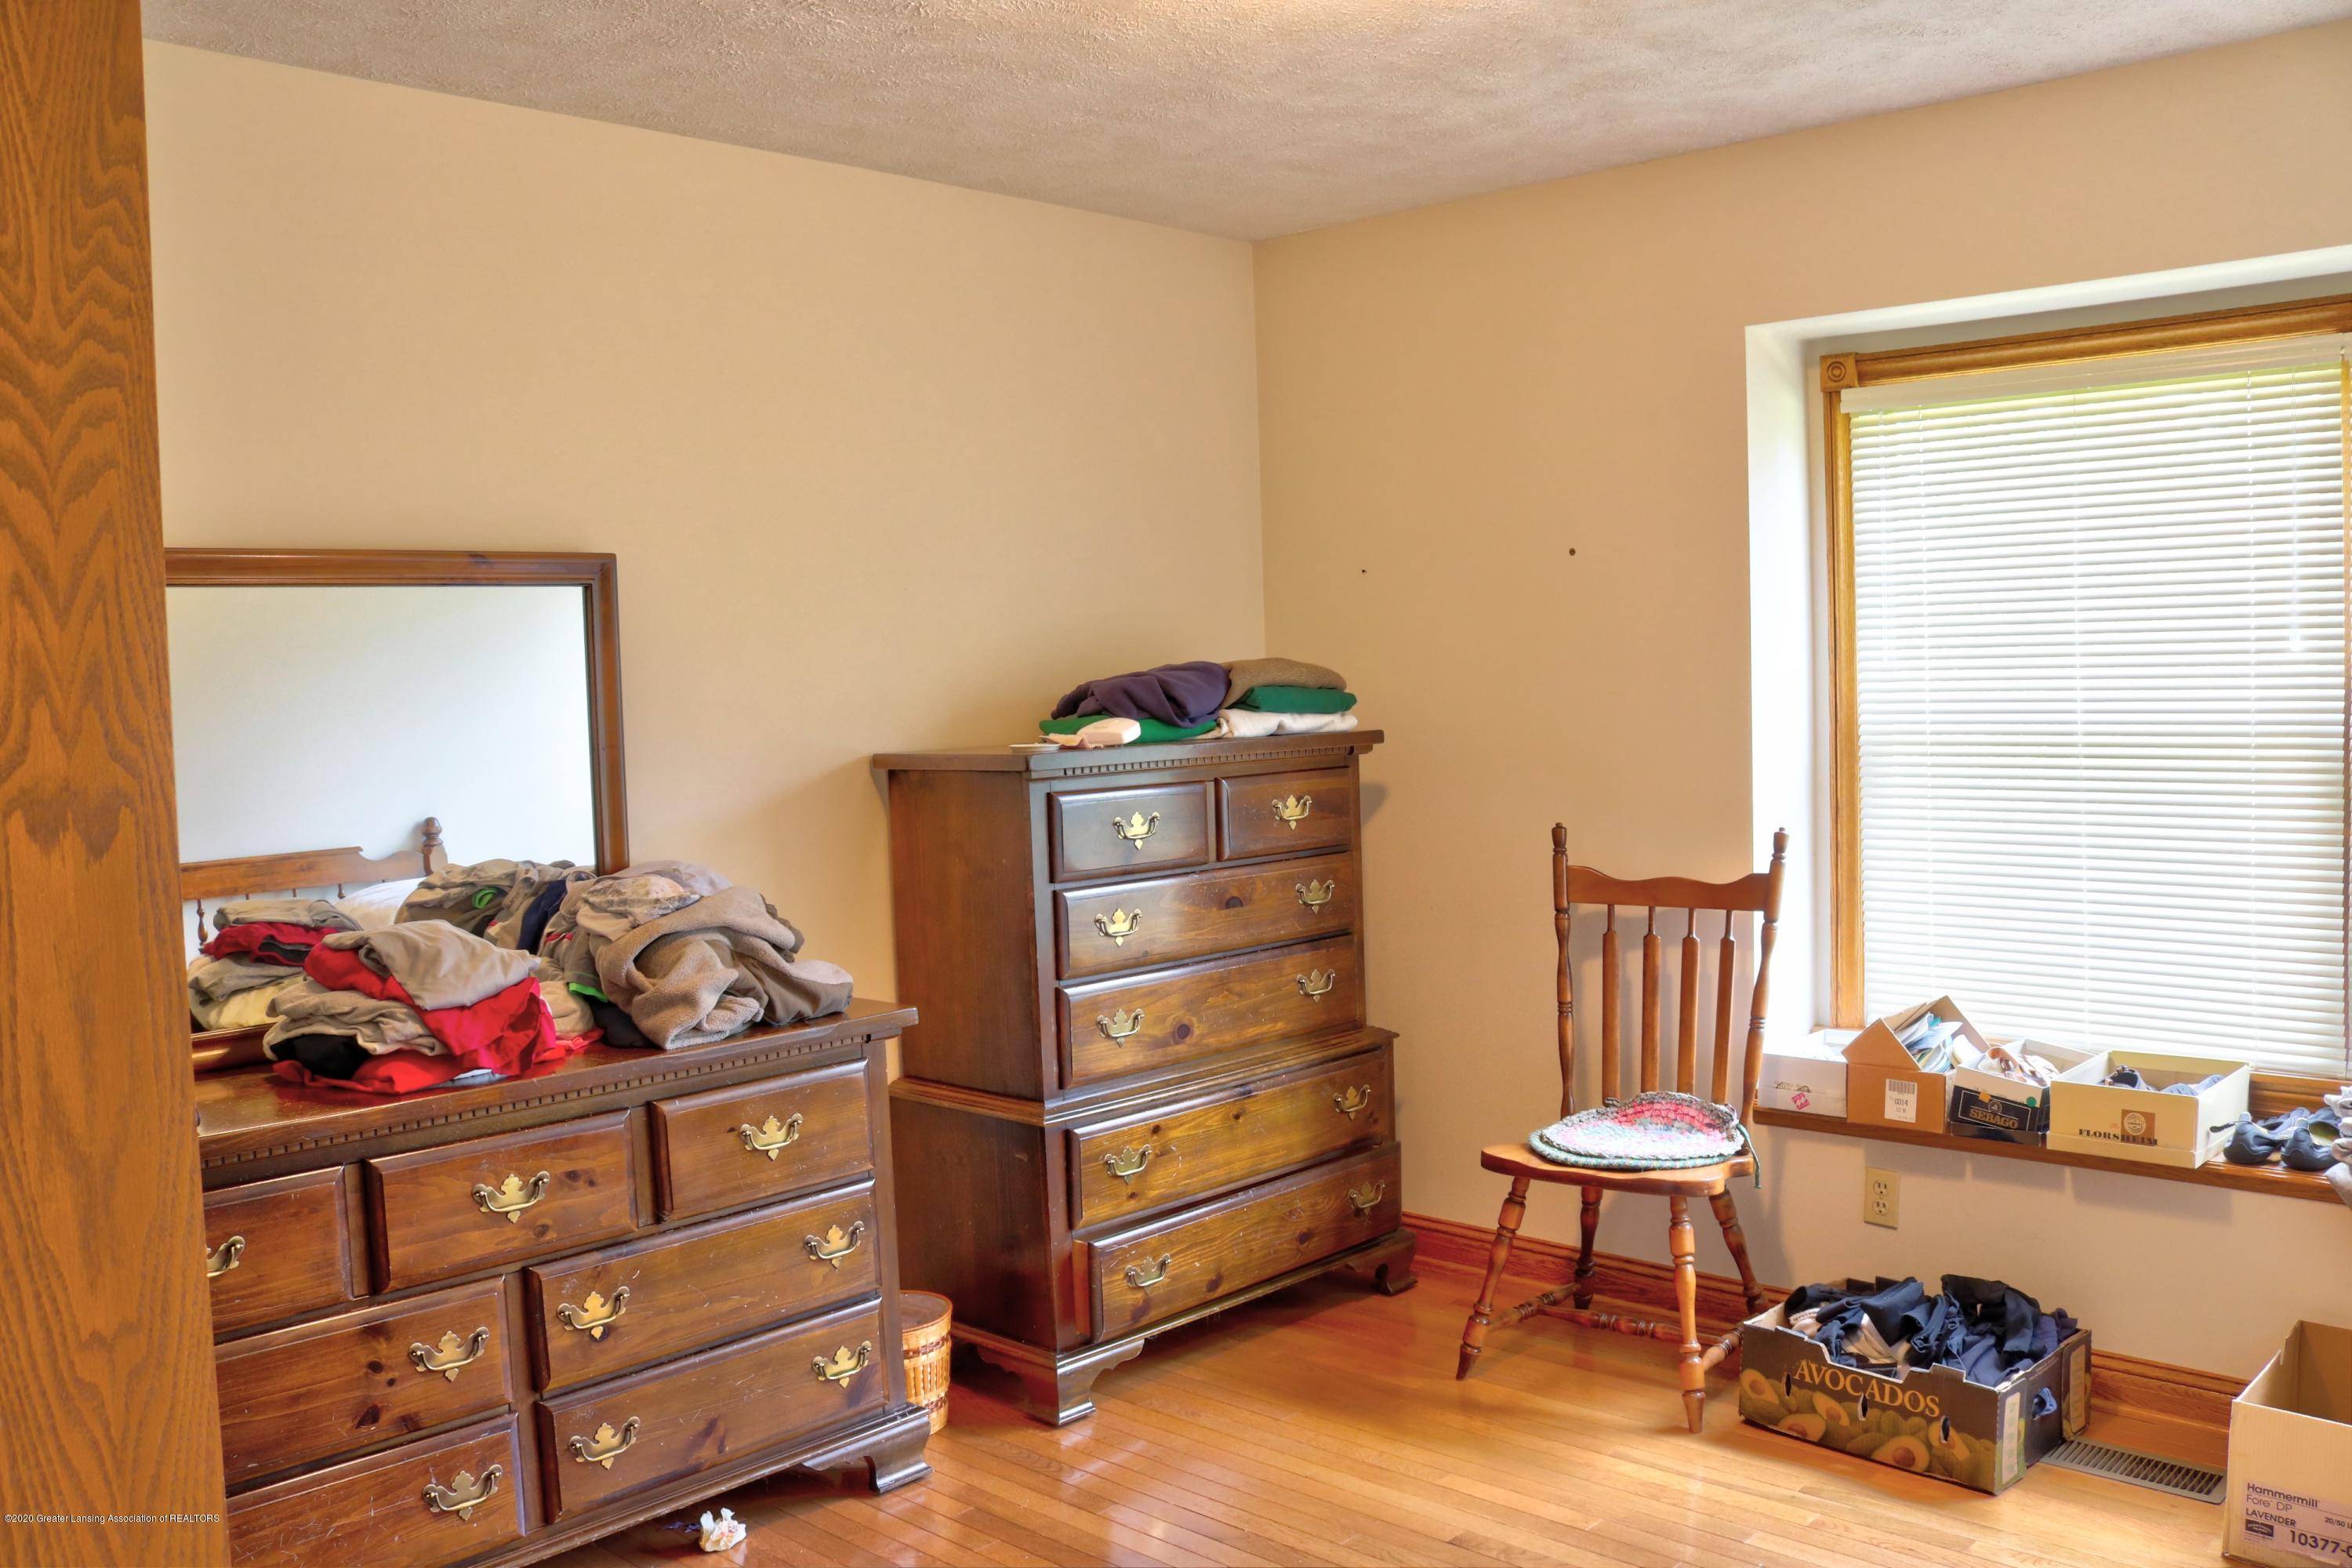 845 Lamb Rd - 2nd Bed 1 - 24